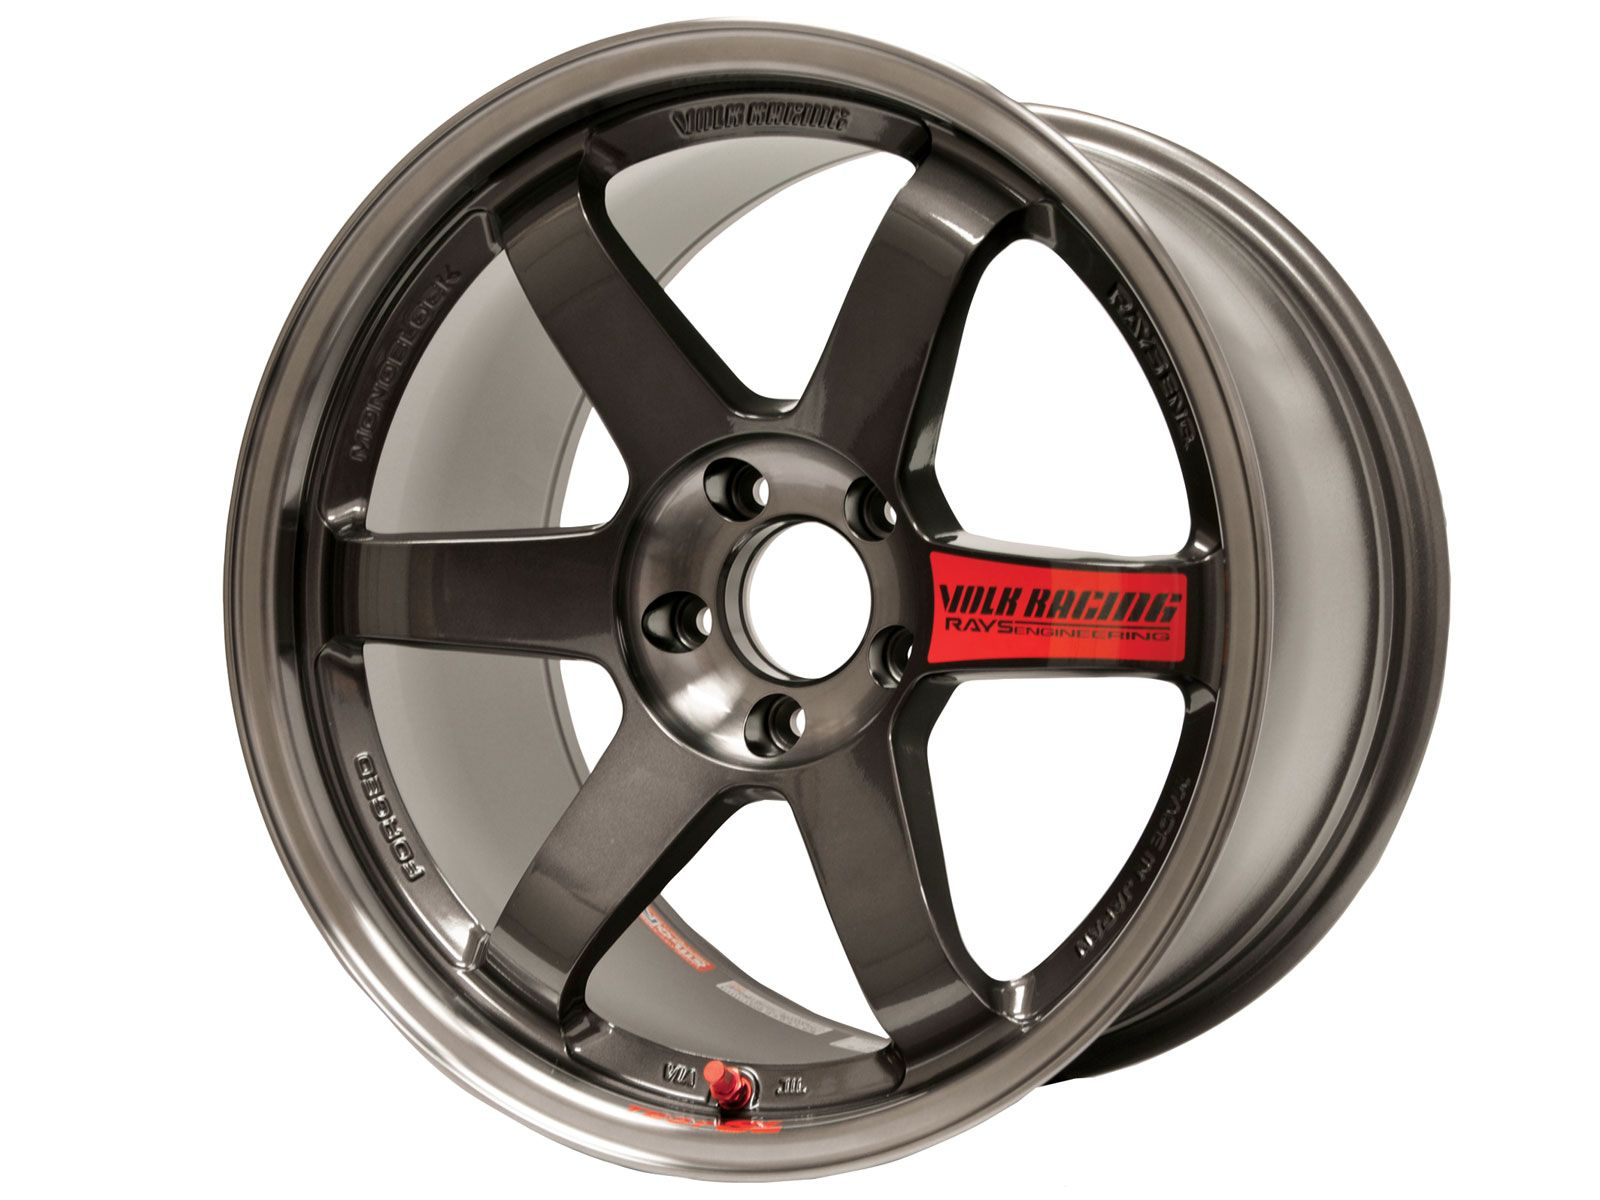 Volk TE37 Wheels. Vivid Racing carries Volk Wheels and Rims at discounted prices. Large Selection. Visit or Call Us.